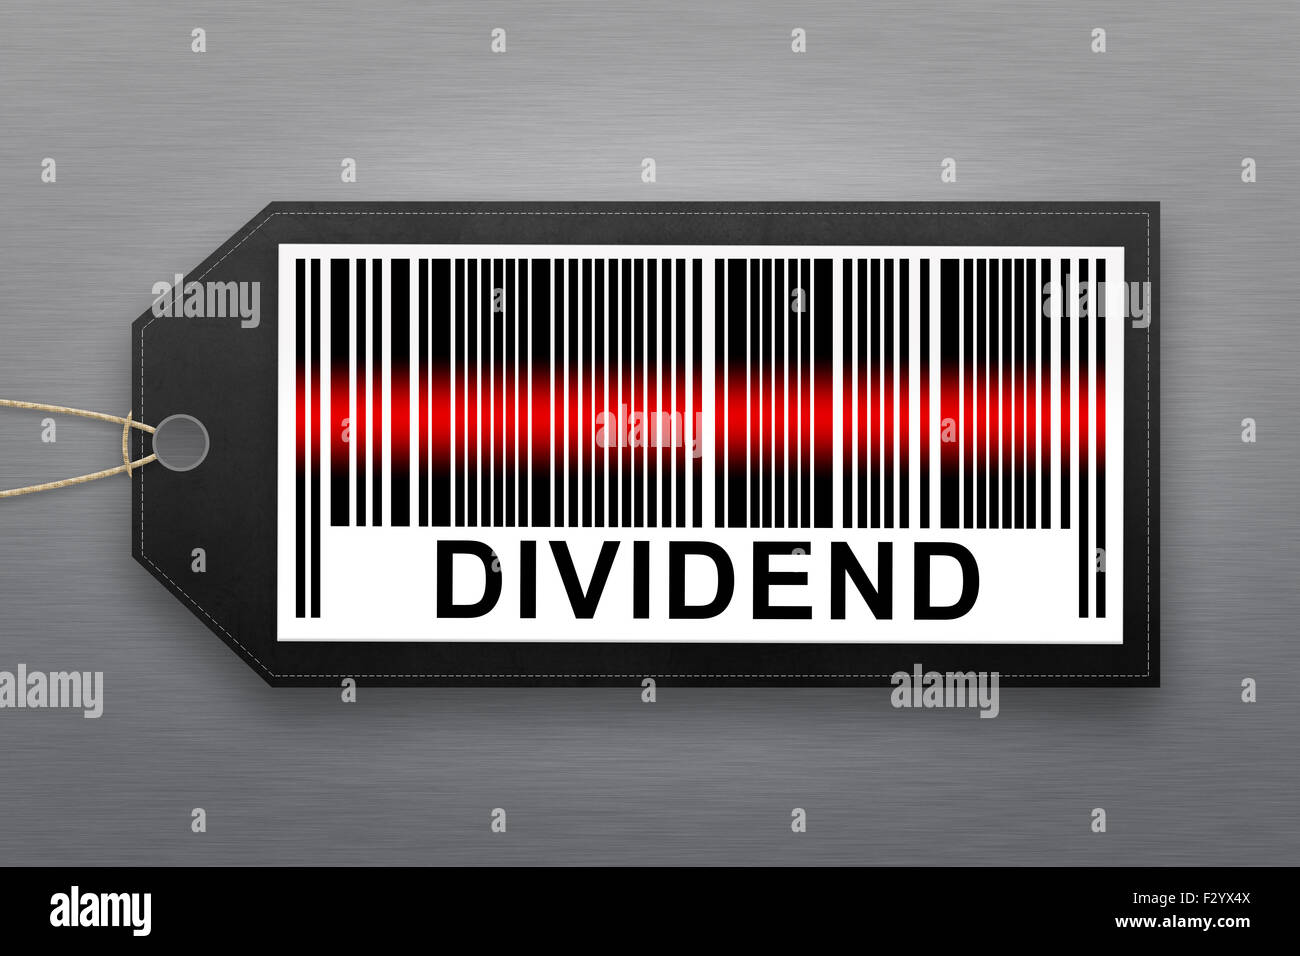 dividend barcode with stainless steel background - Stock Image